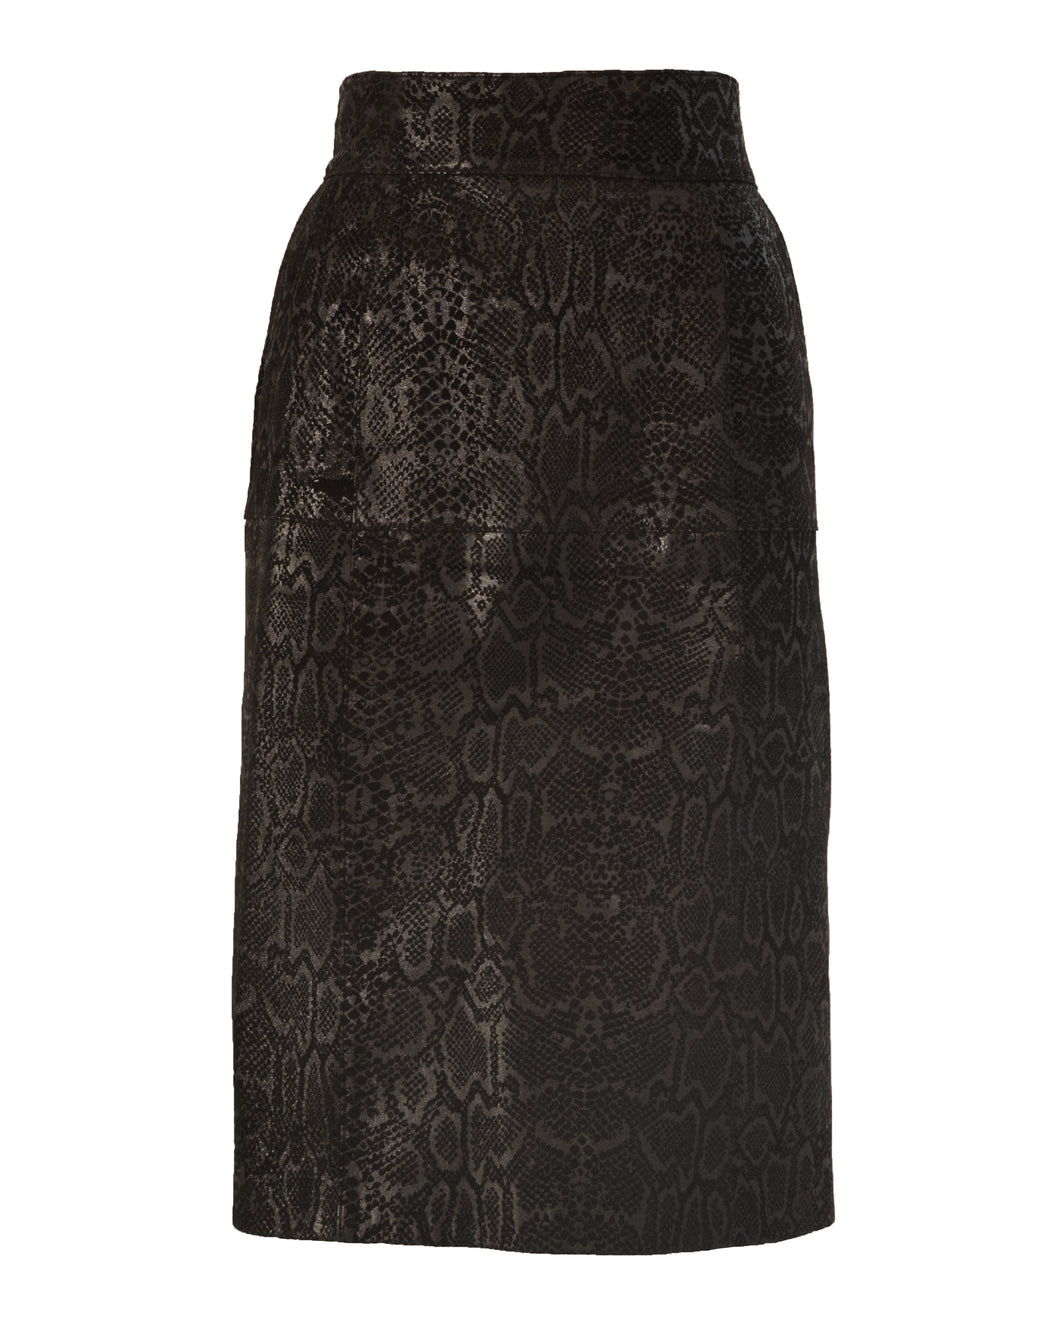 SLITHER MIDI SKIRT - WOMEN'S SIZE L